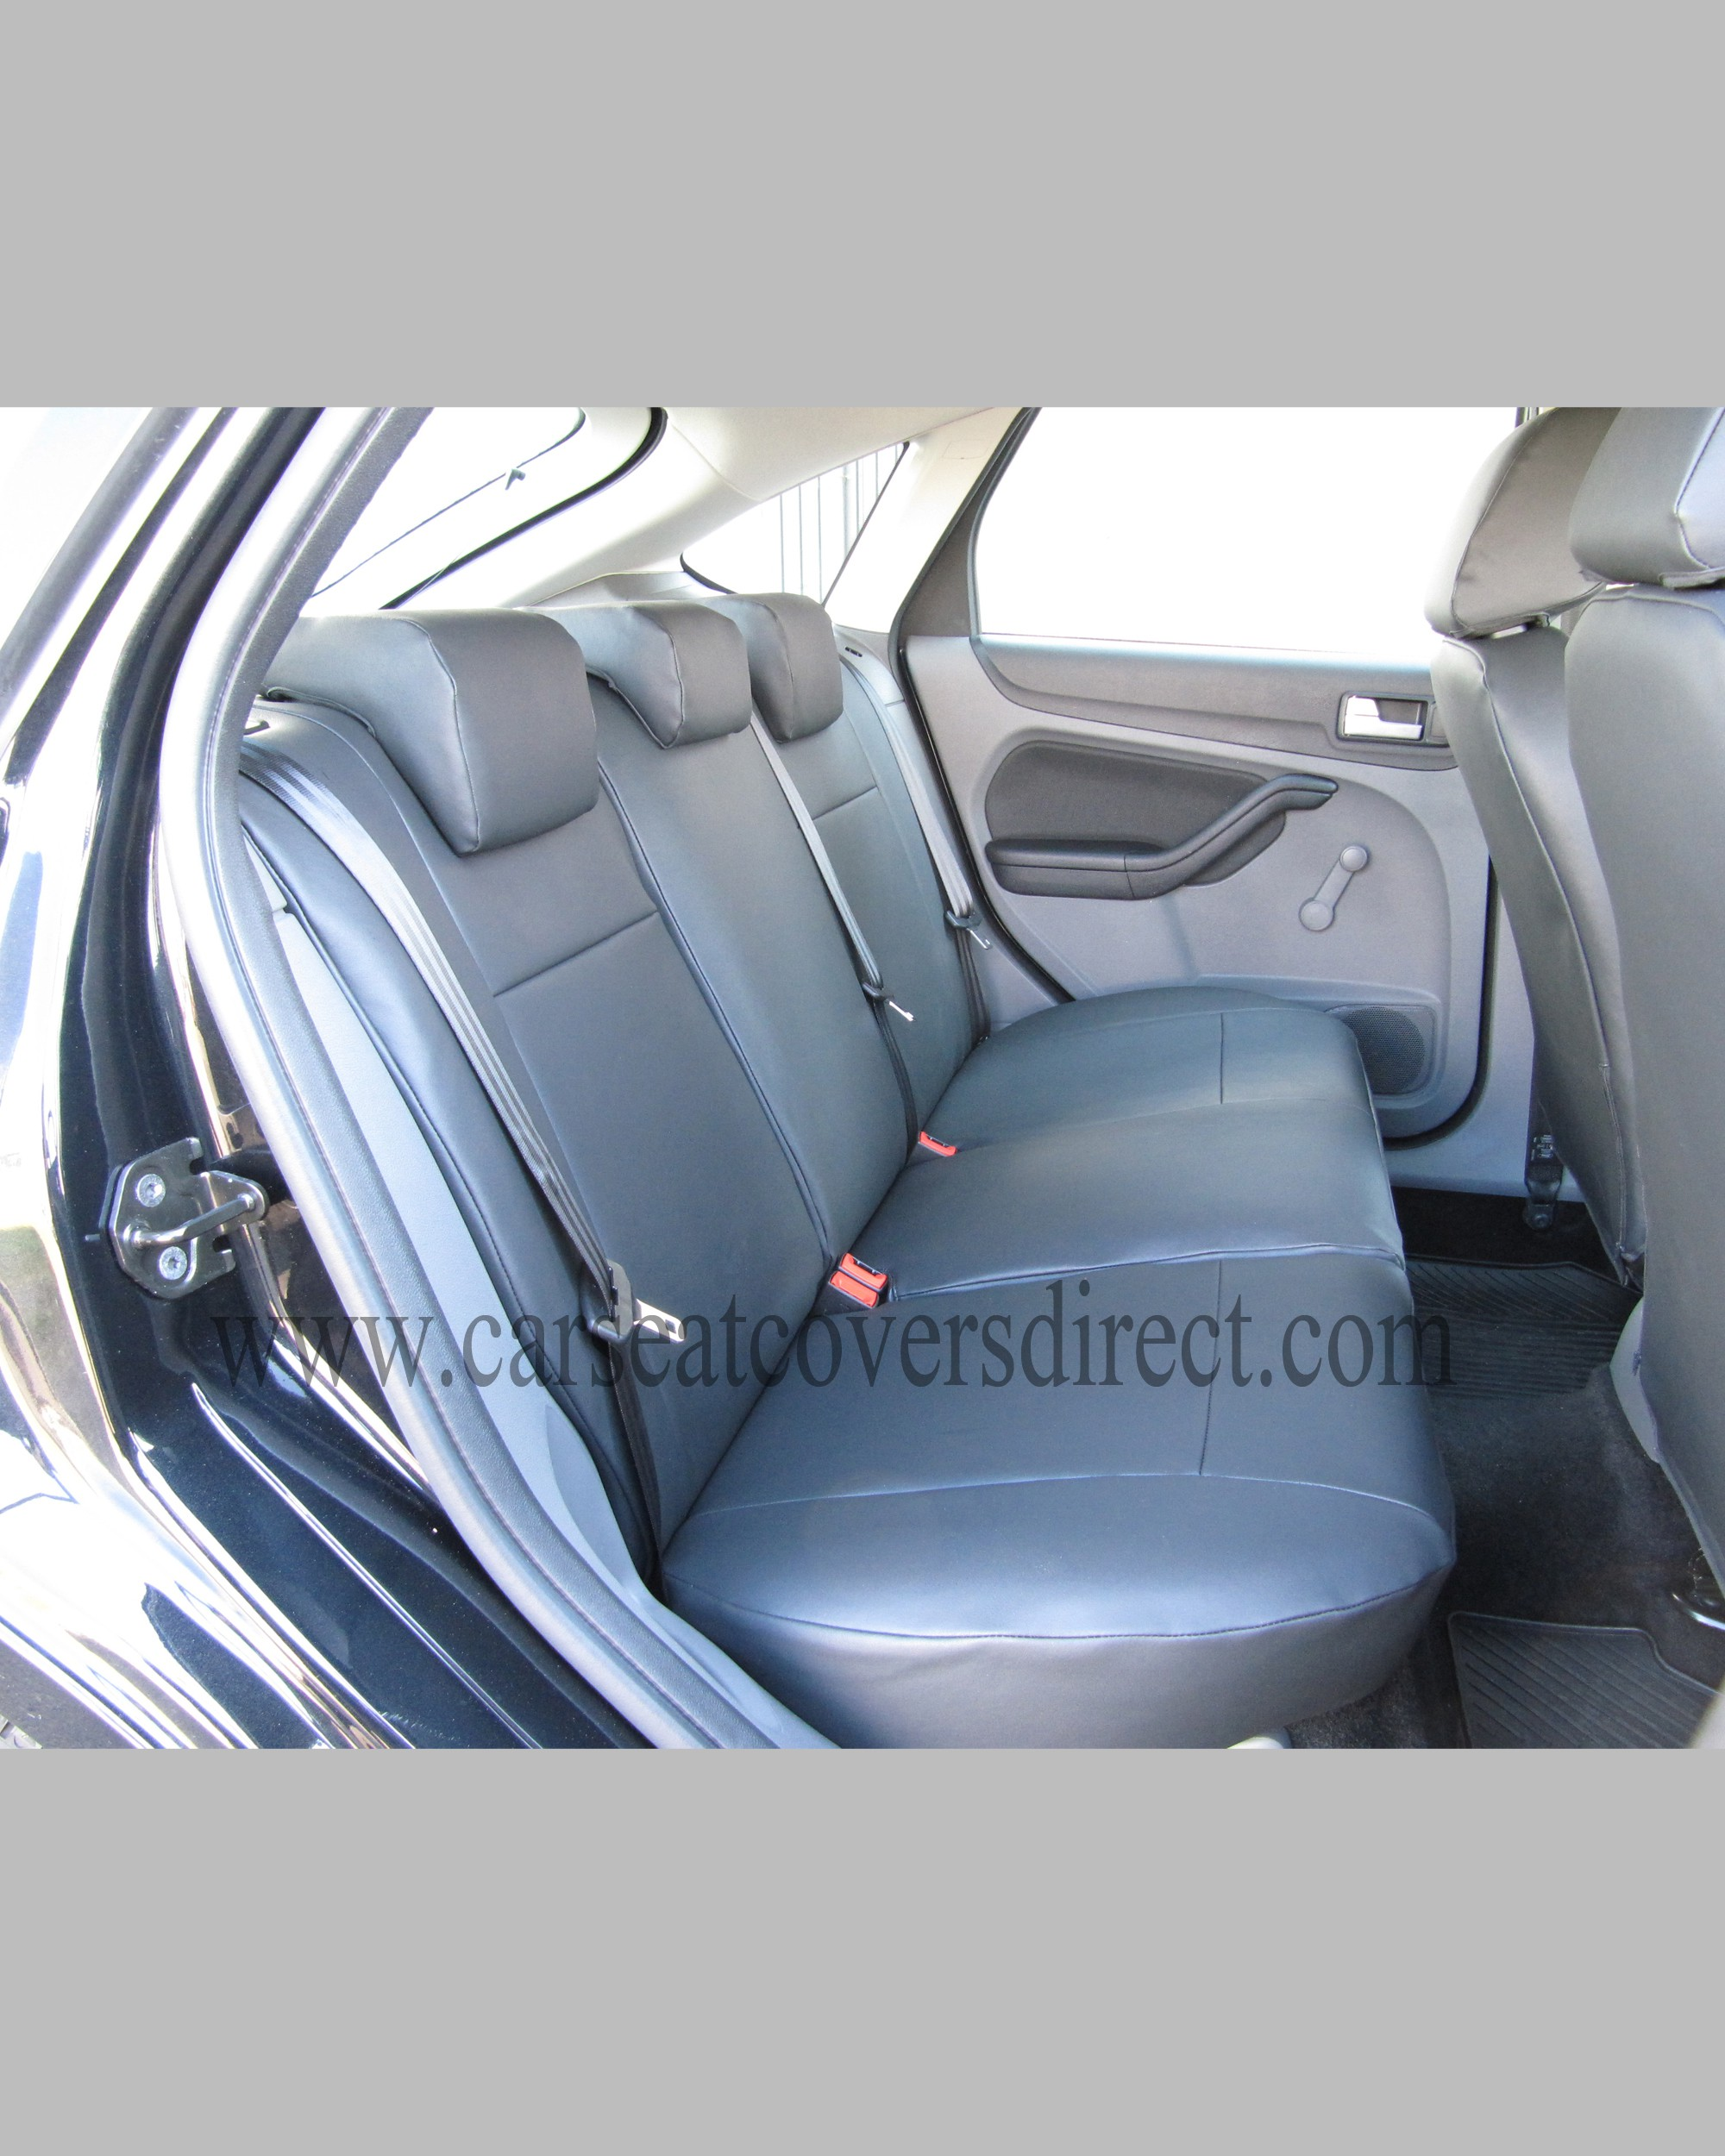 Ford Focus Seat Covers 2nd Generation Car Seat Covers